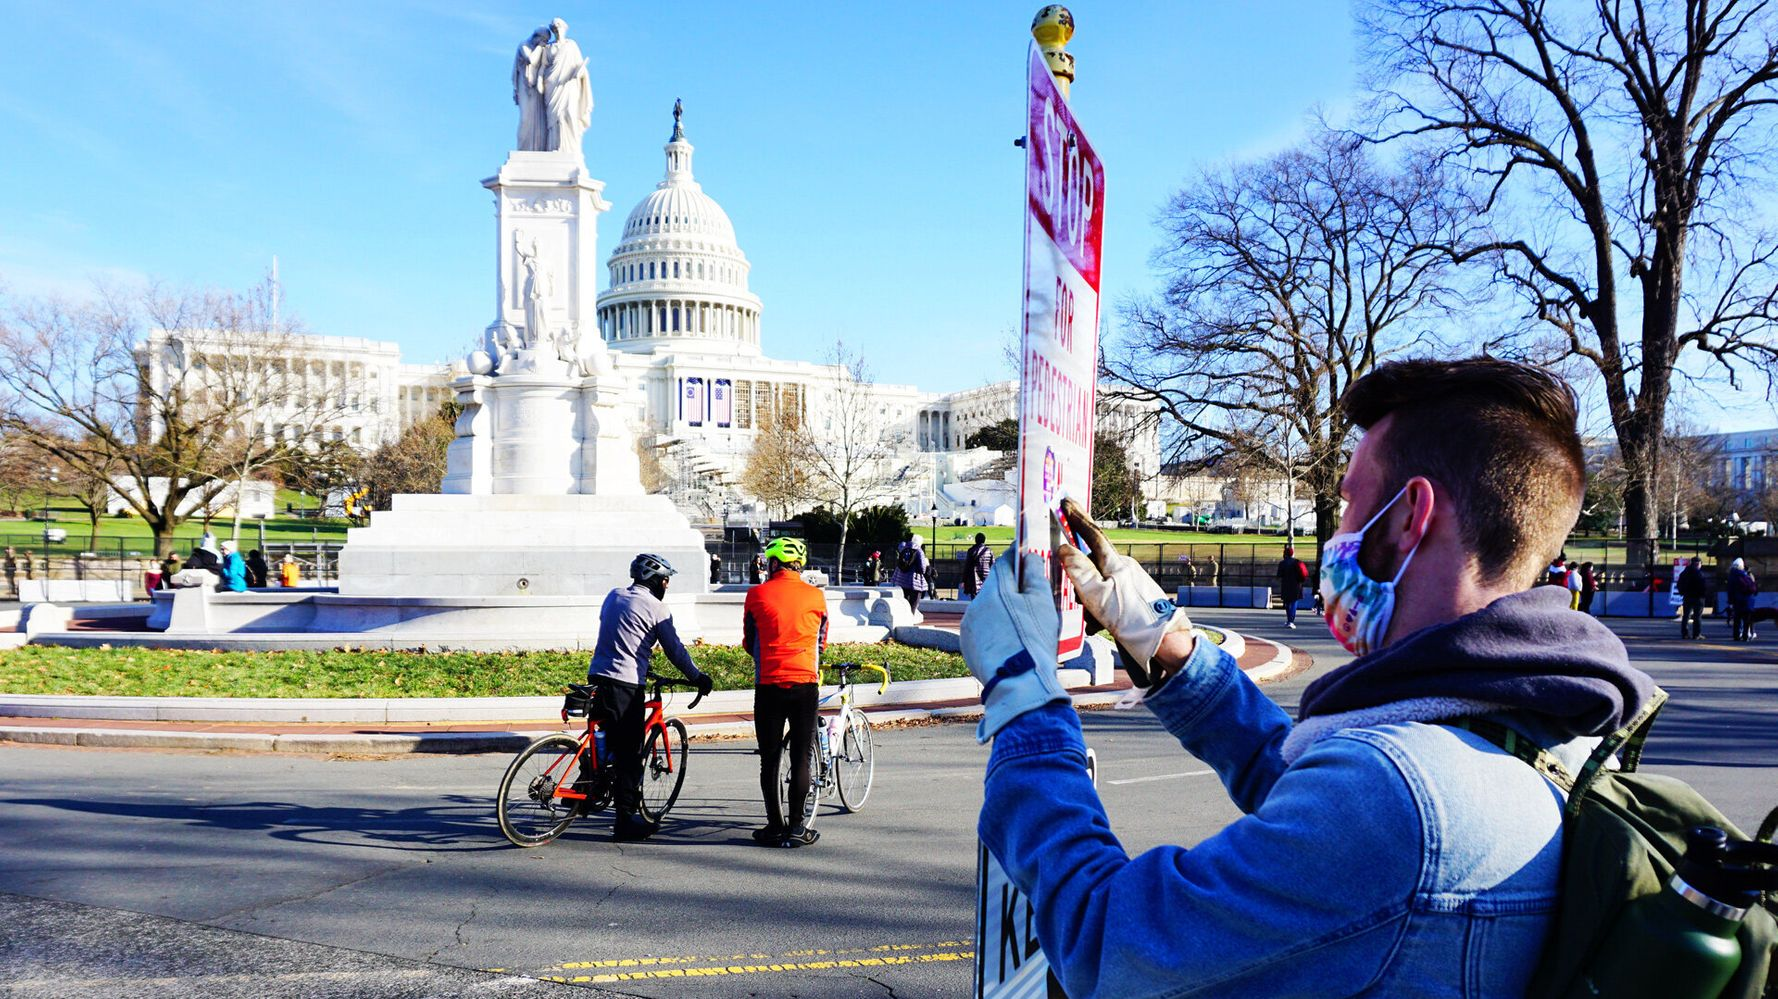 A Minute Of Kindness: The Military Veterans Who Cleaned DC Streets After Capitol Riot